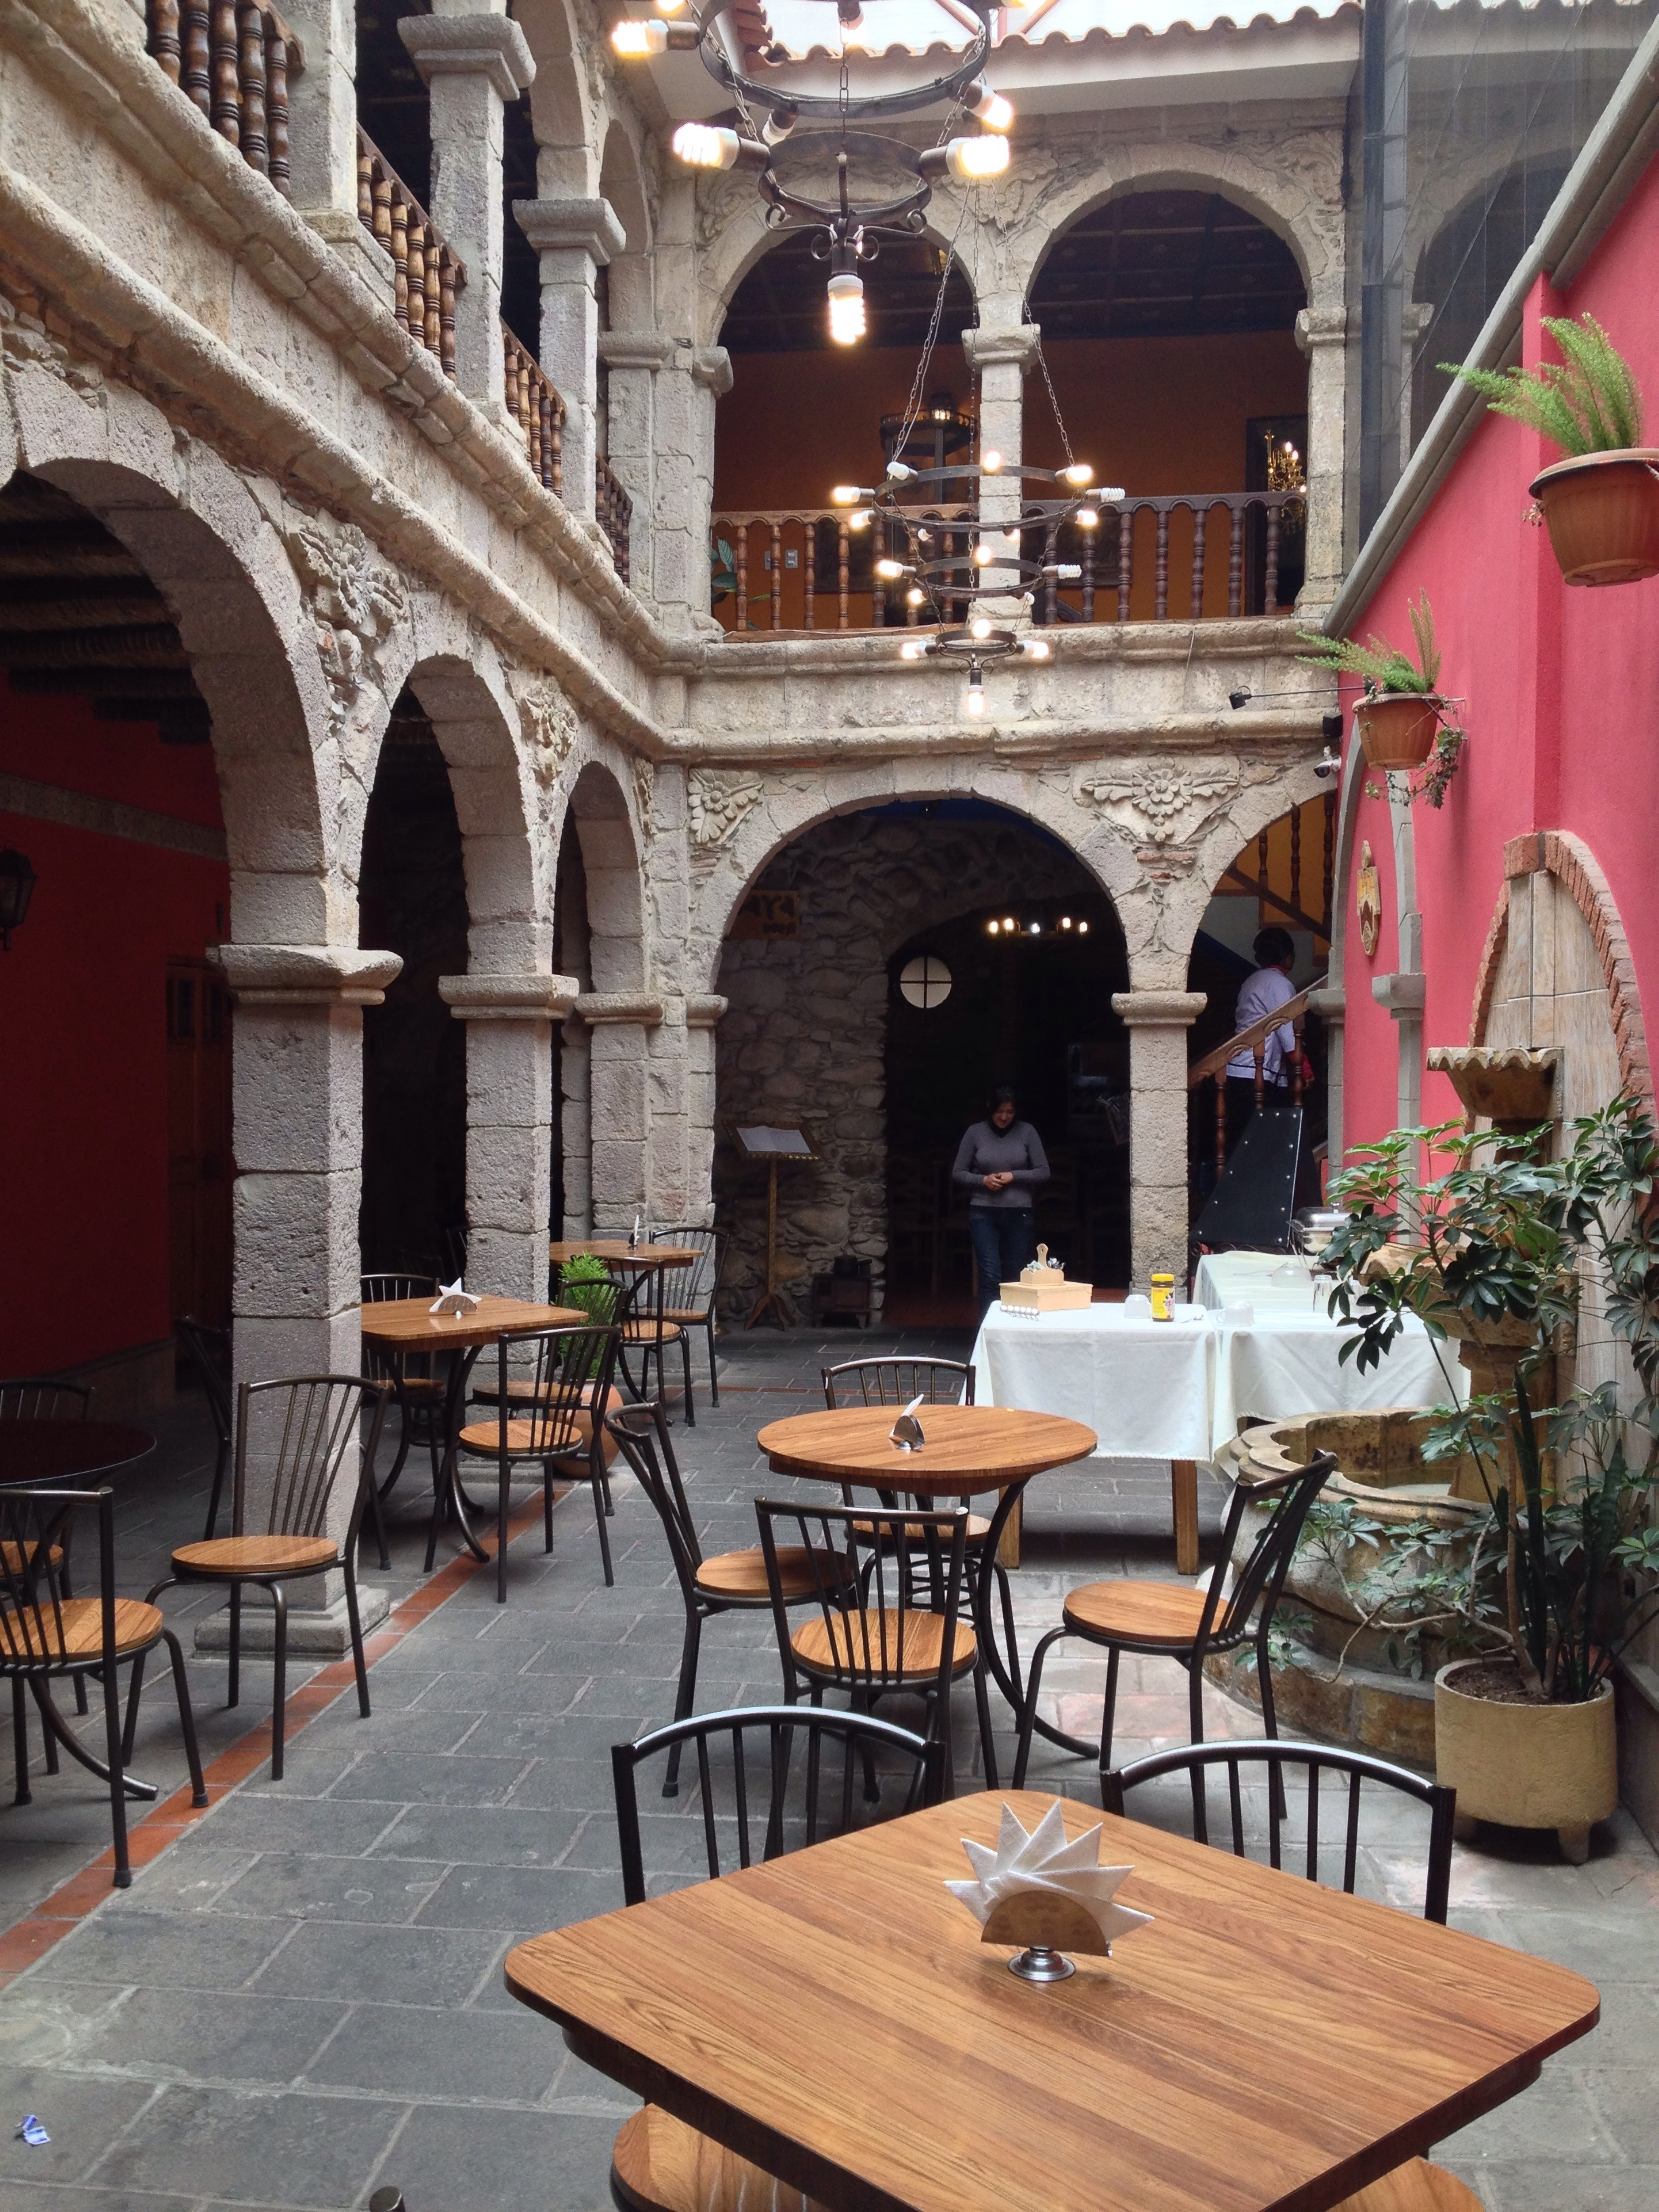 Hotel Piedra - a great location and feel.